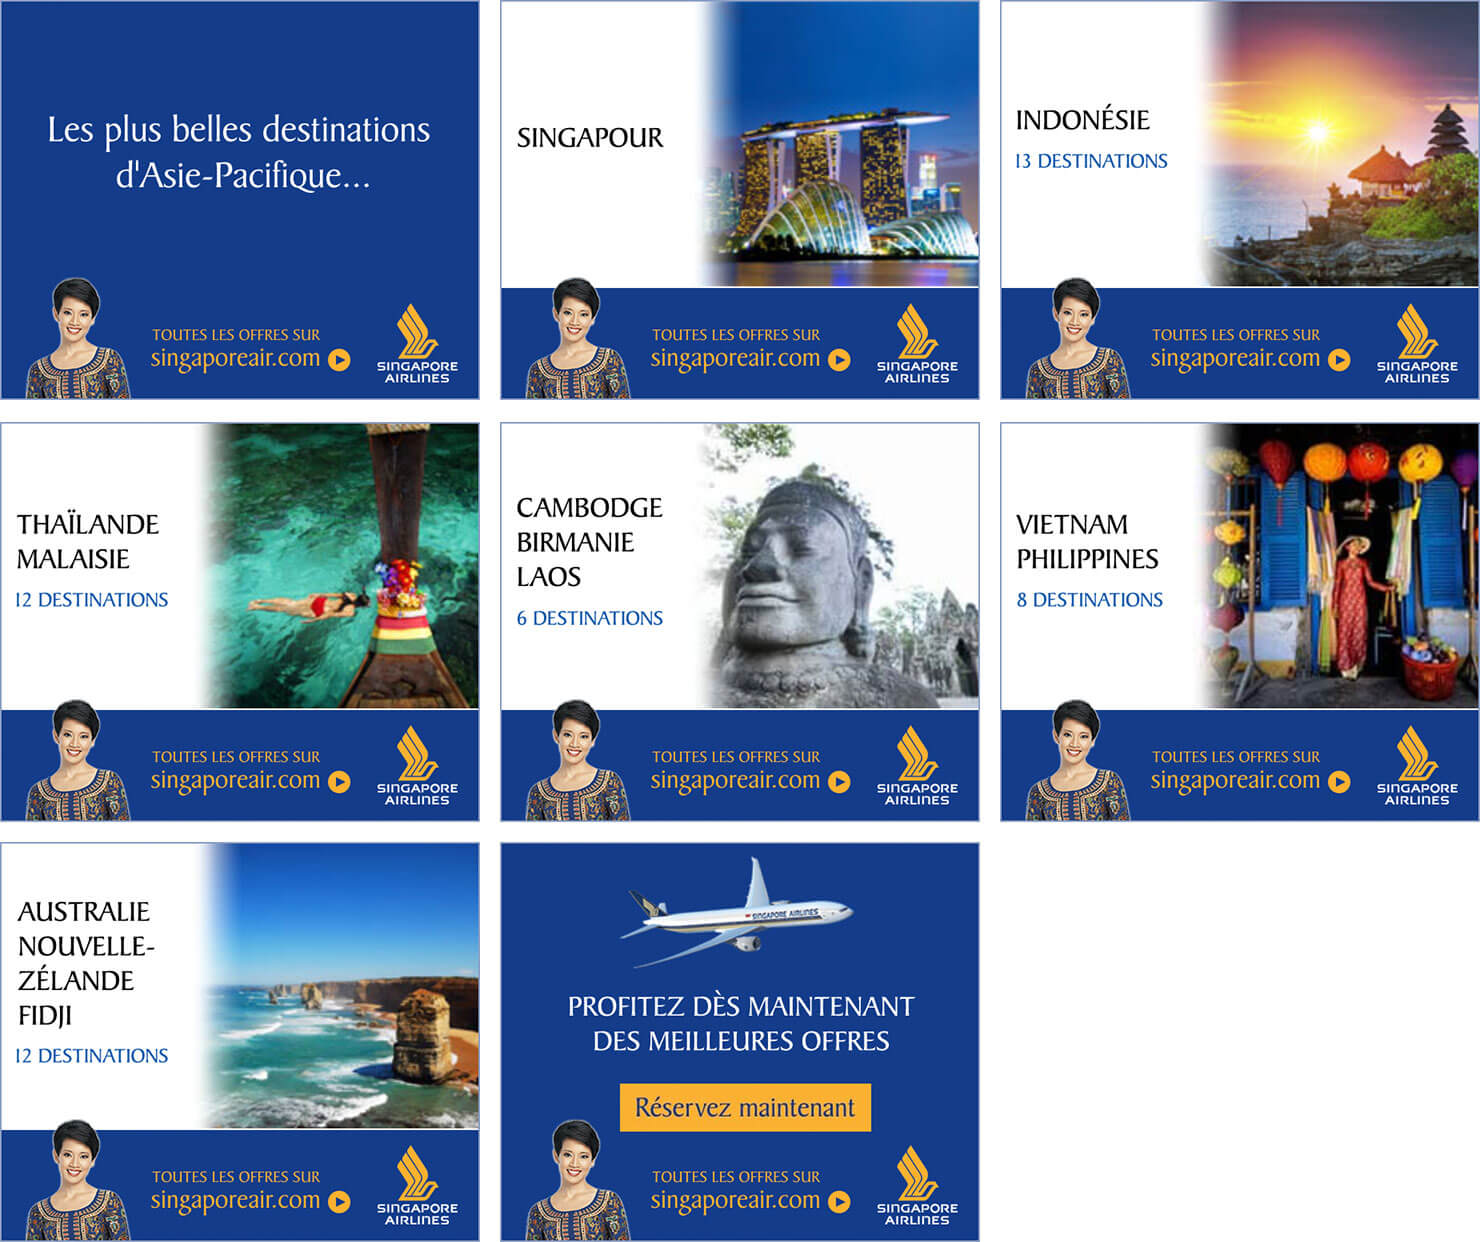 Singapore Airlines HTML5 banner storyboard